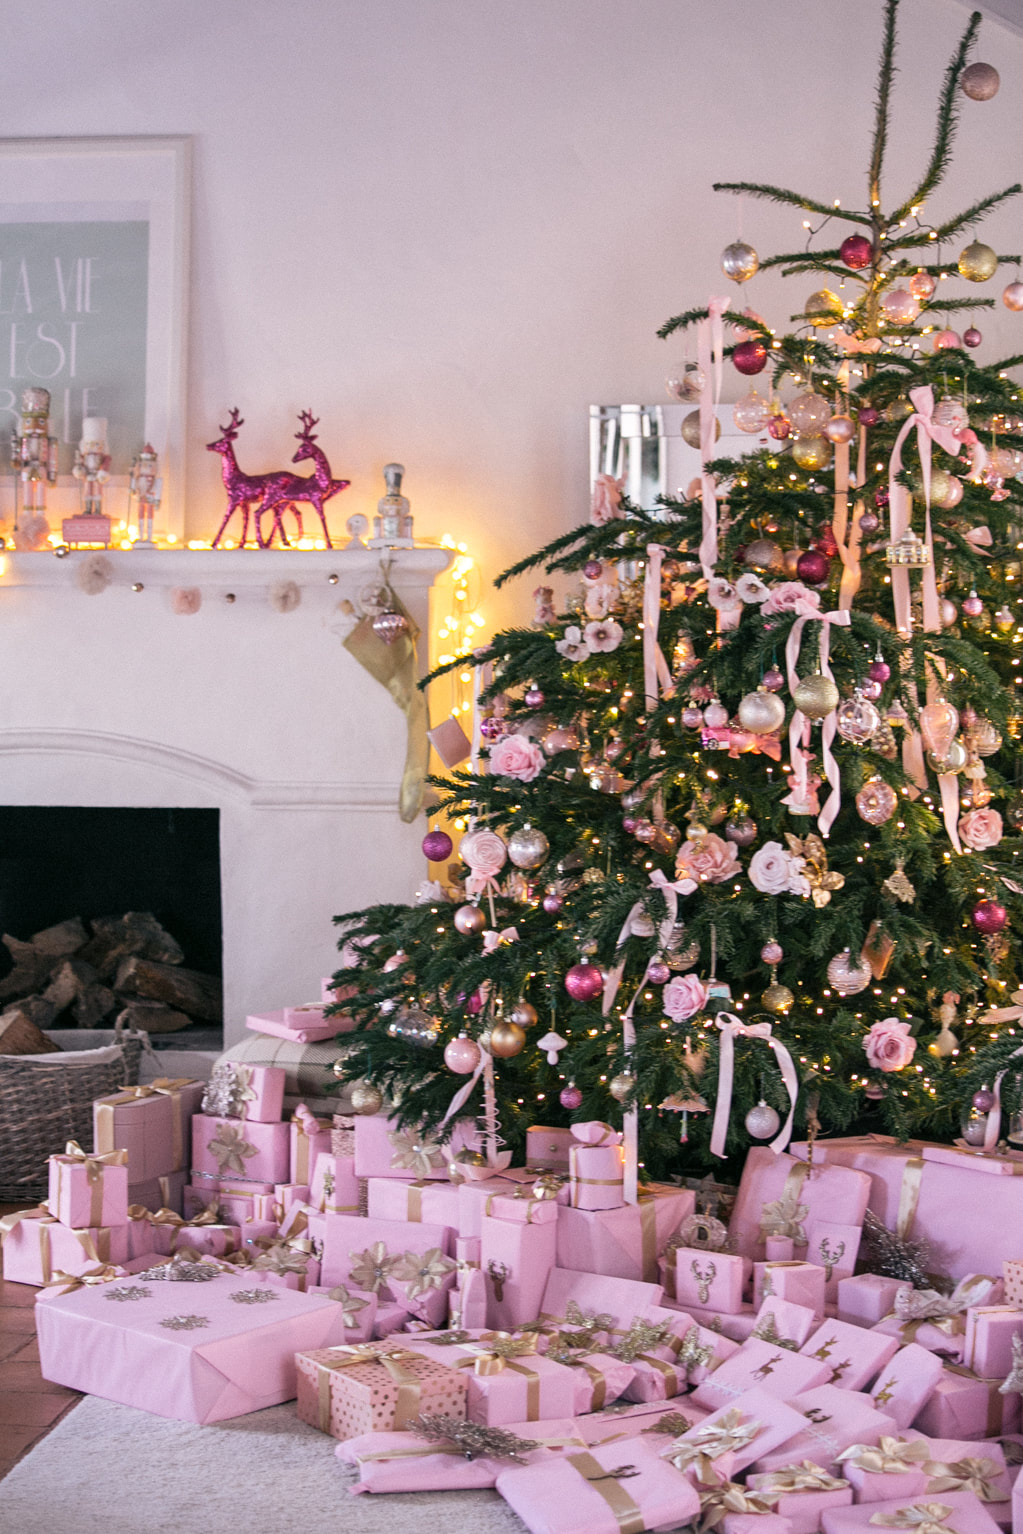 How to decorate your bedroom for Christmas! by The Belle Blog